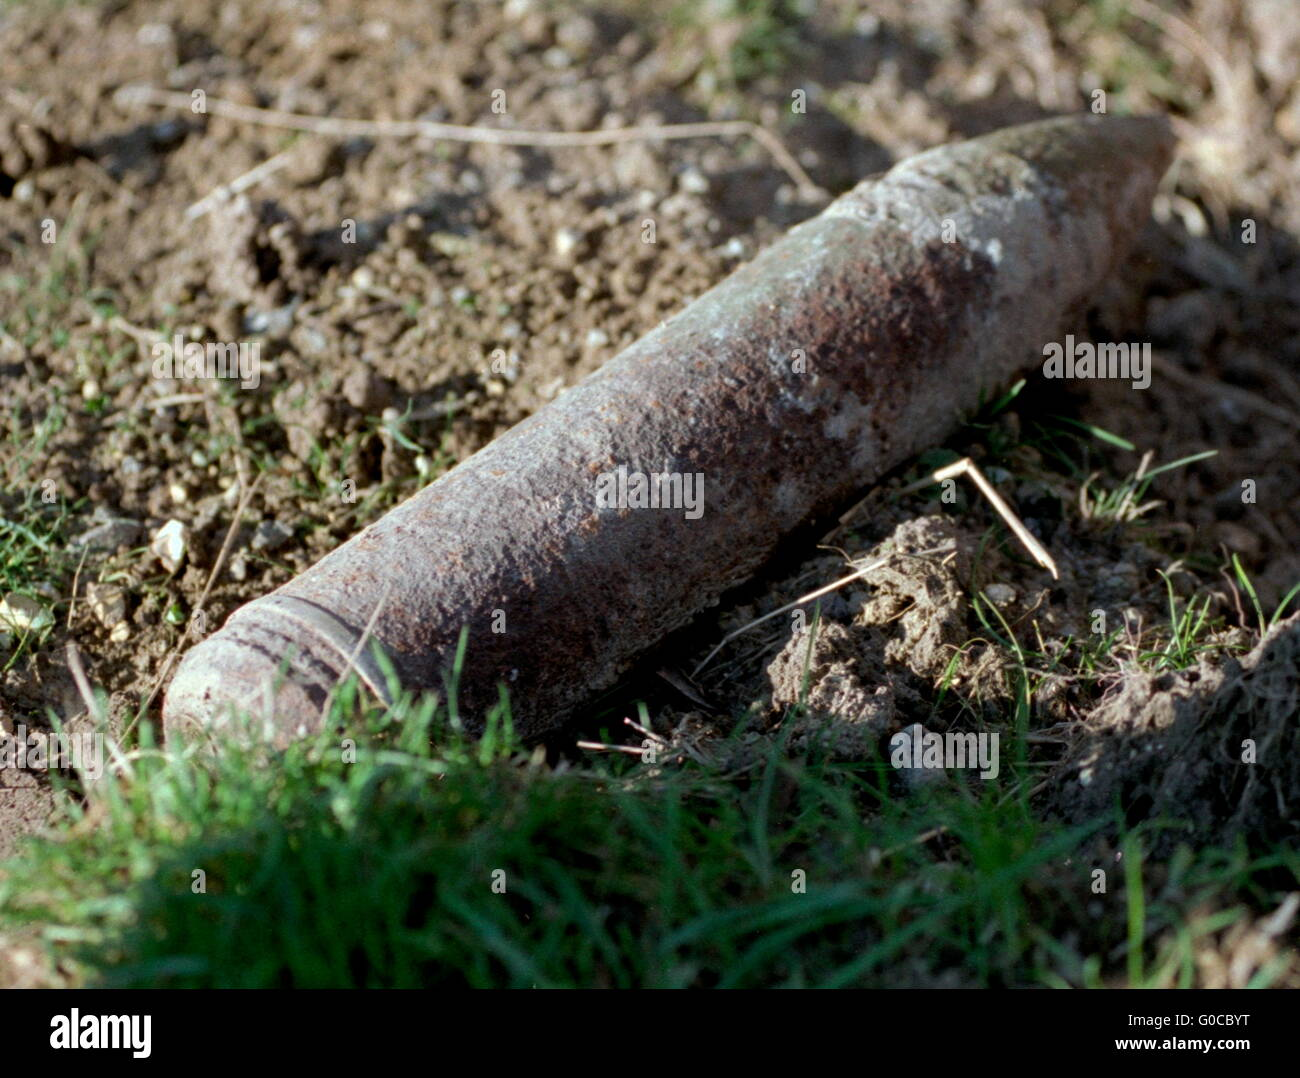 AJAXNETPHOTO. CAPPY, SOMME, FRANCE. - WW1 MUNITIONS - AN ARTILLERY SHELL PLOUGHED UP FROM A FIELD AWAITS COLLECTION - Stock Image